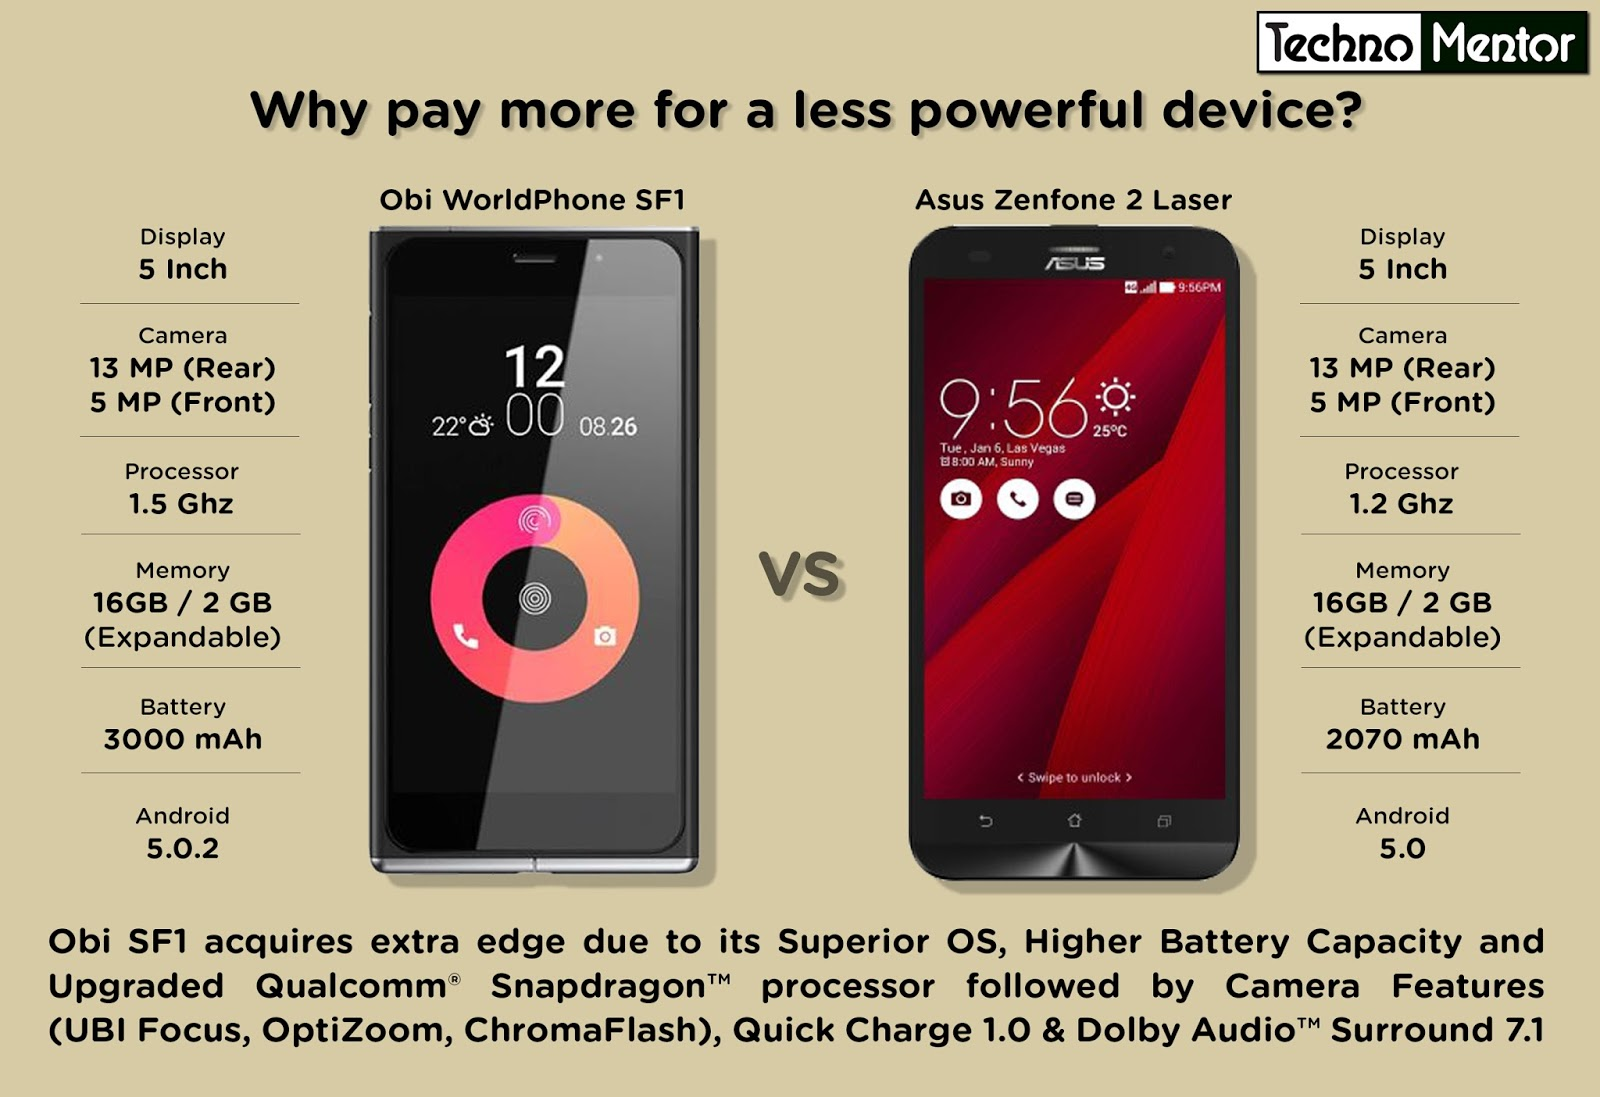 The Techno Mentor Obi Worldphone SF1 Vs Asus Zenfone2